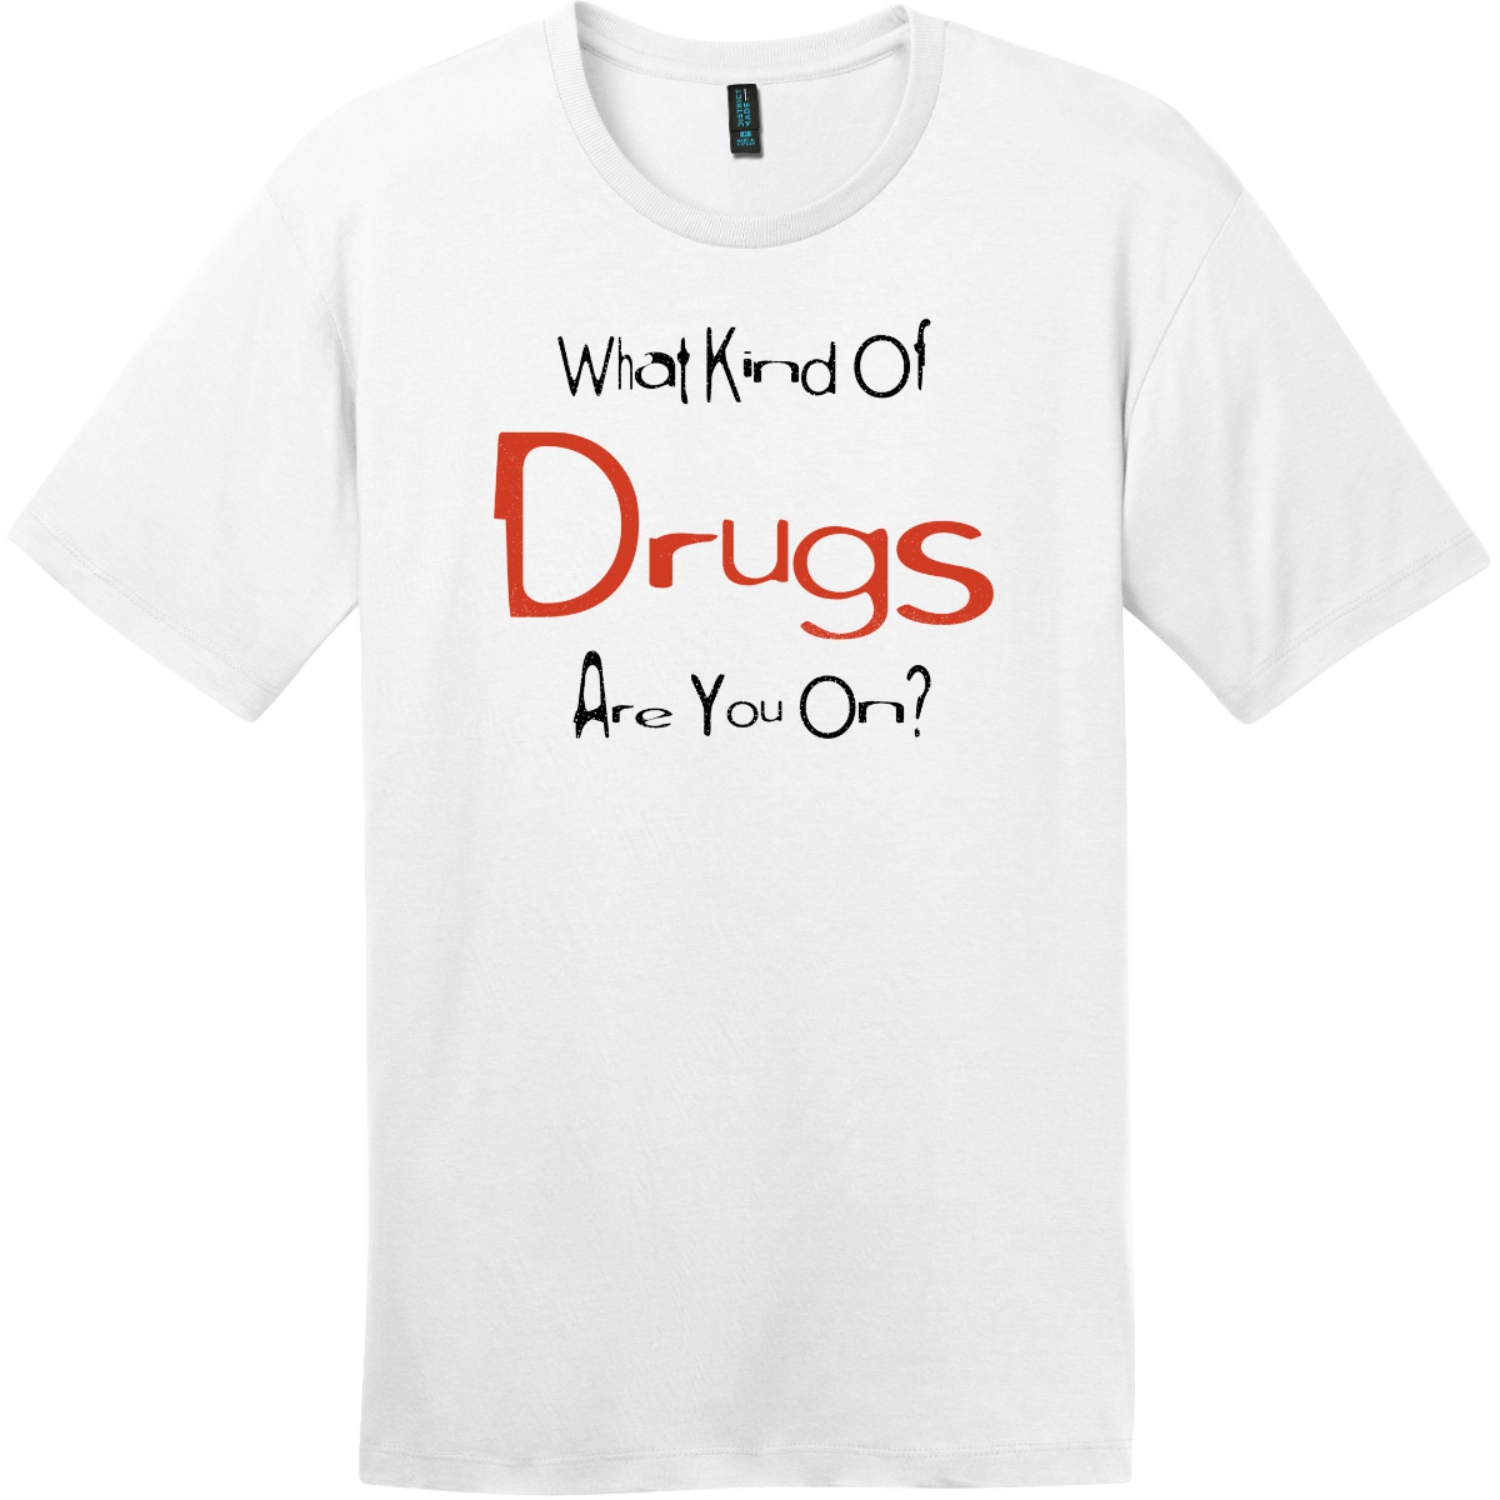 What Kind Of Drugs Are You On T-Shirt Bright White District Perfect Weight Tee DT104